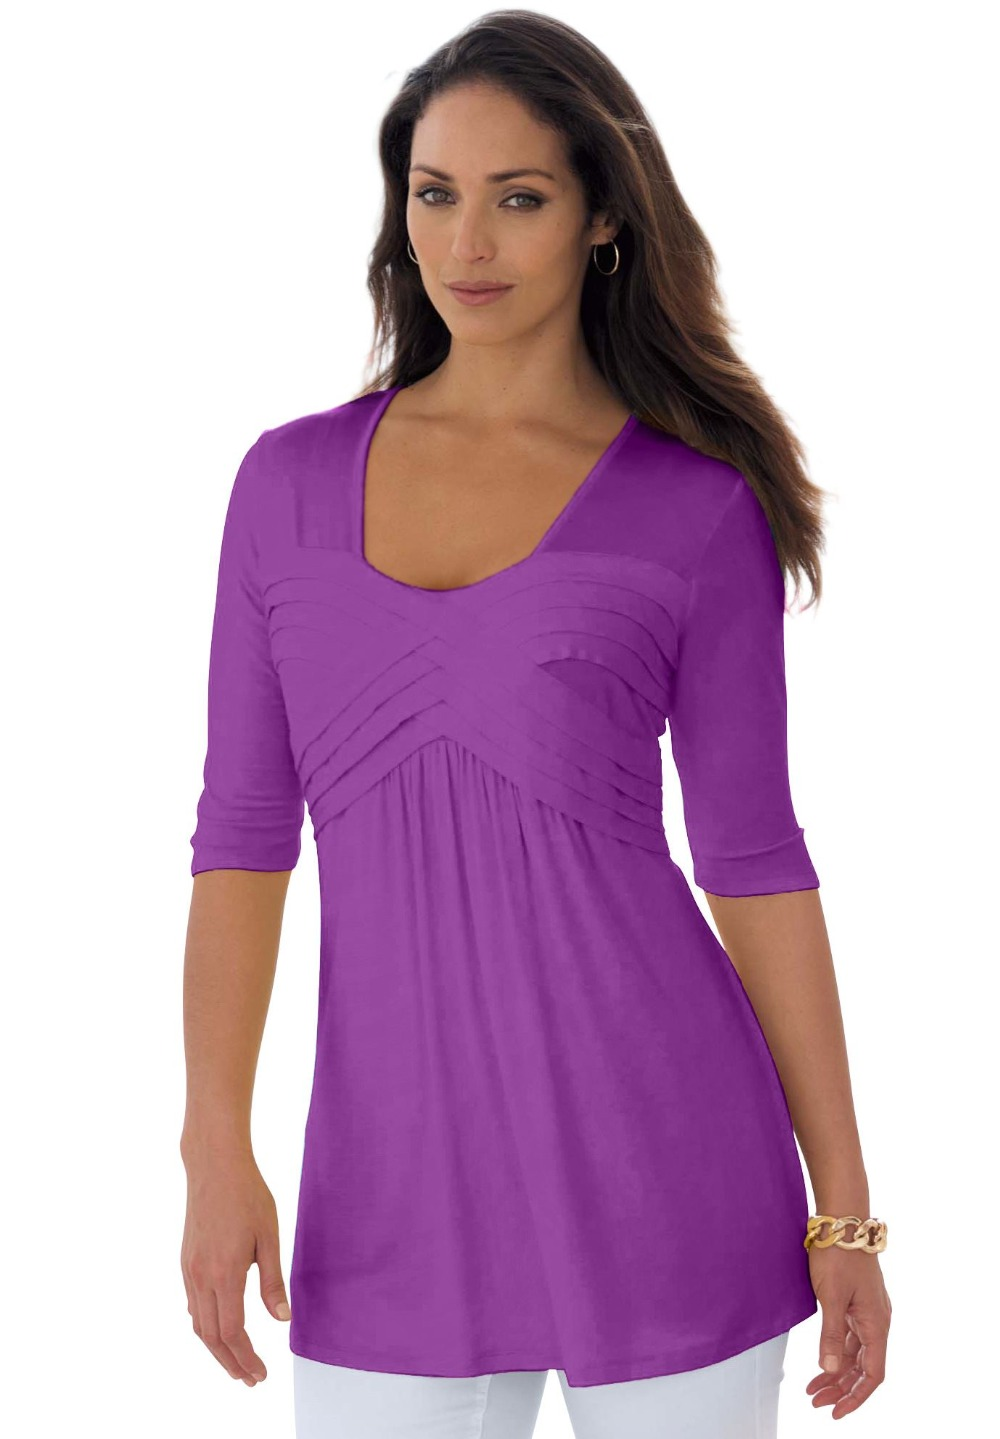 L 8XL Large Size Sexy Pleated Tunic T shirt Tee Top Shirt ...